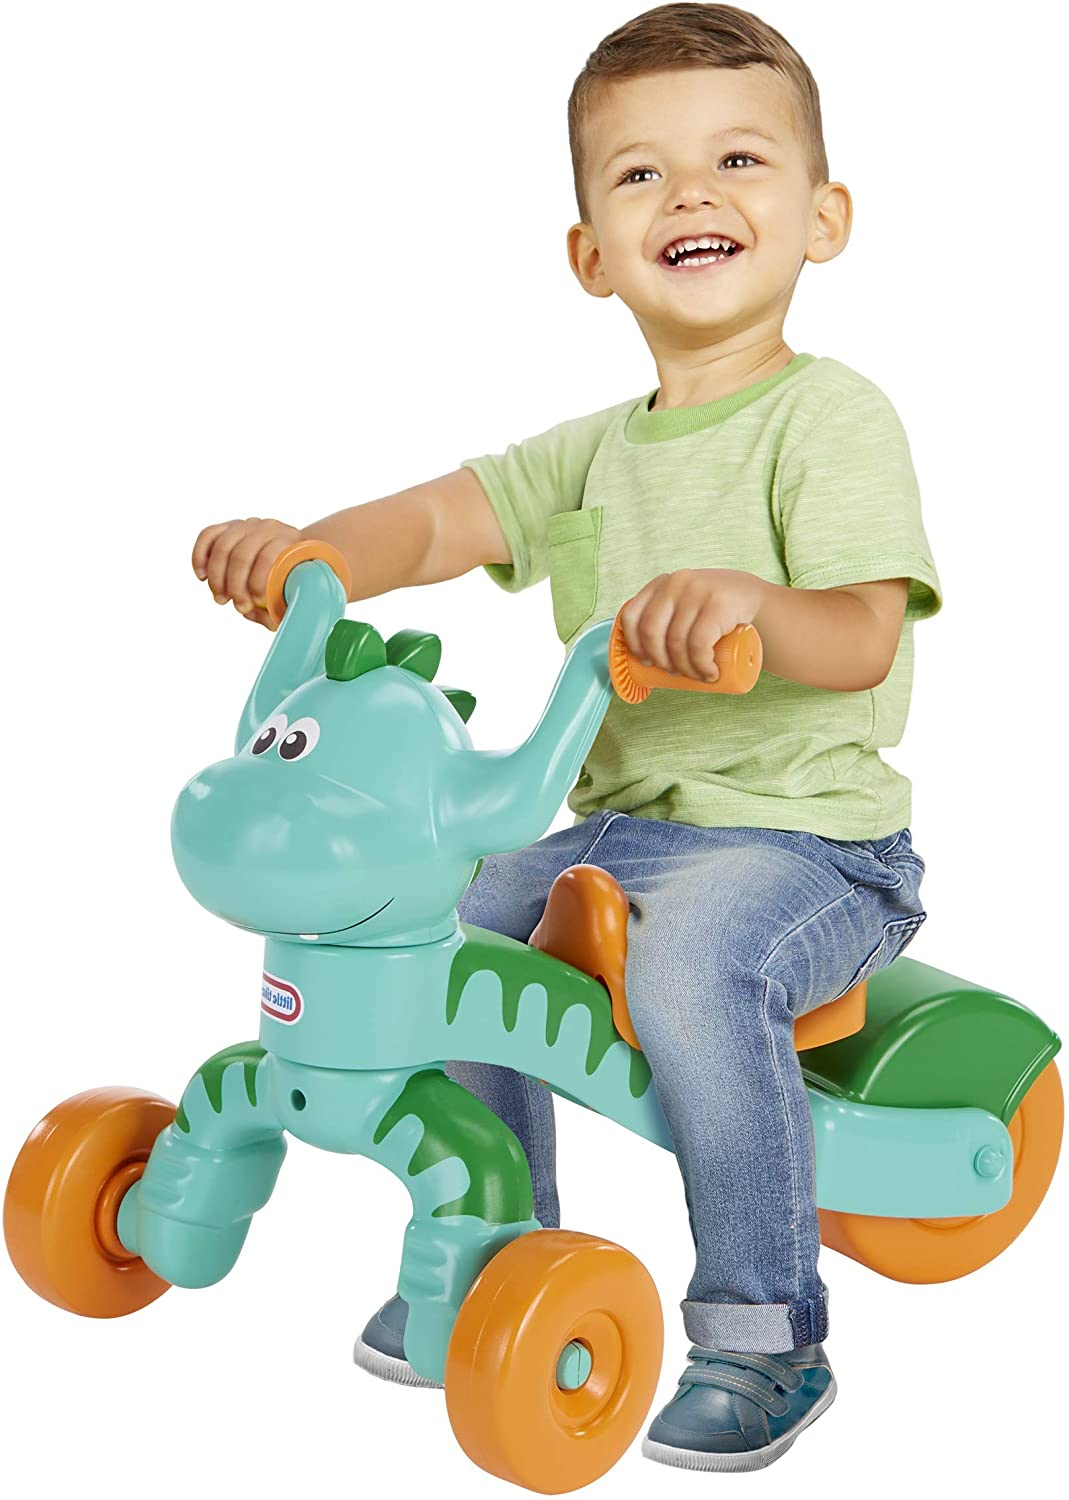 Little Tikes Go and Import Grow Dino Indoor Trike On Houston Mall Toy Outdoor f Ride